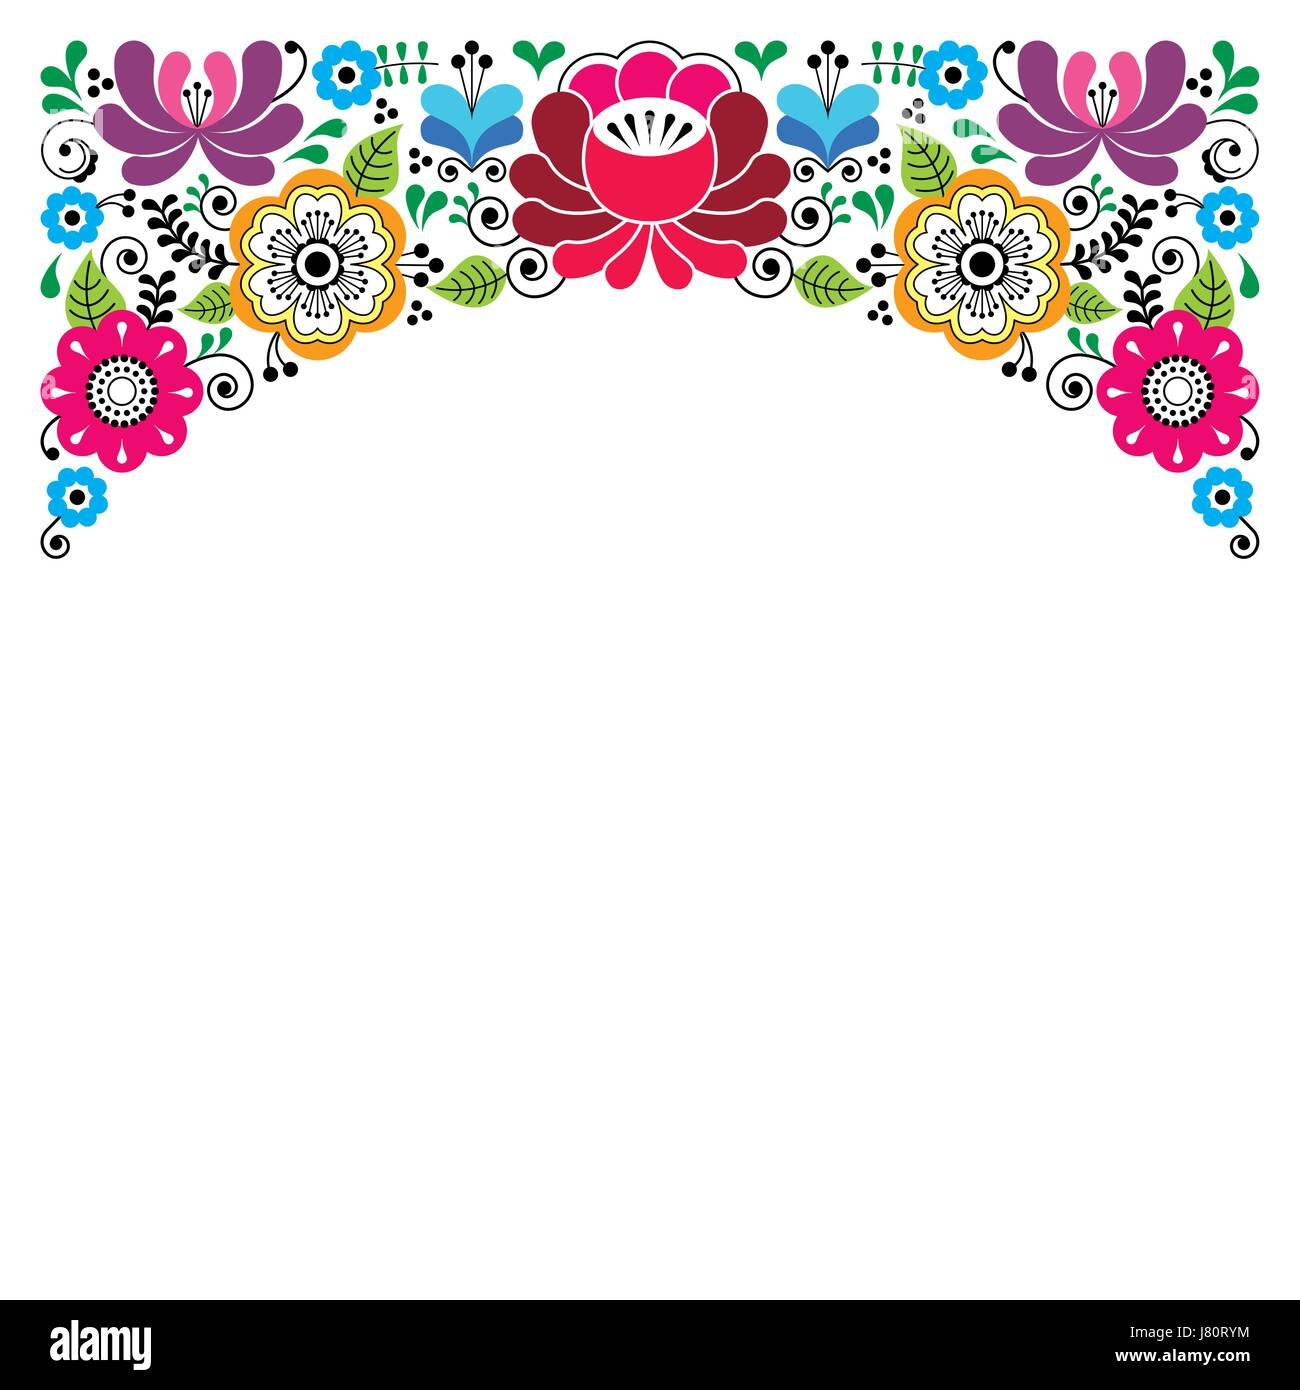 Russian Floral Pattern Colorful Composition Wedding